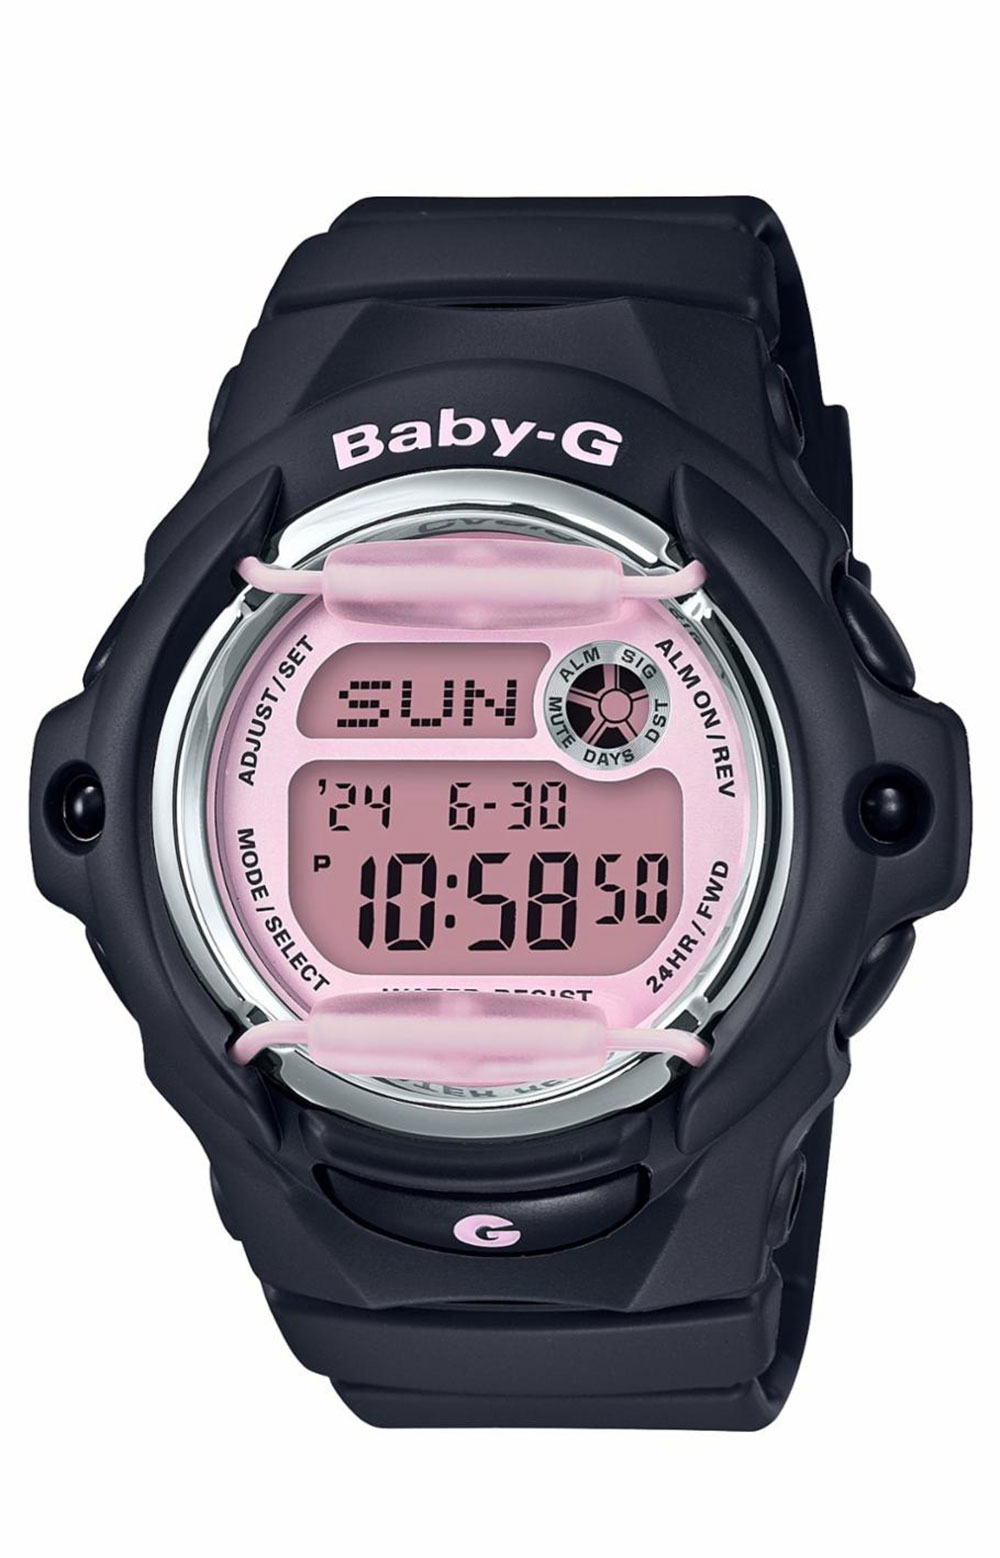 Baby-G BG169M-1 Watch - Black/Pink